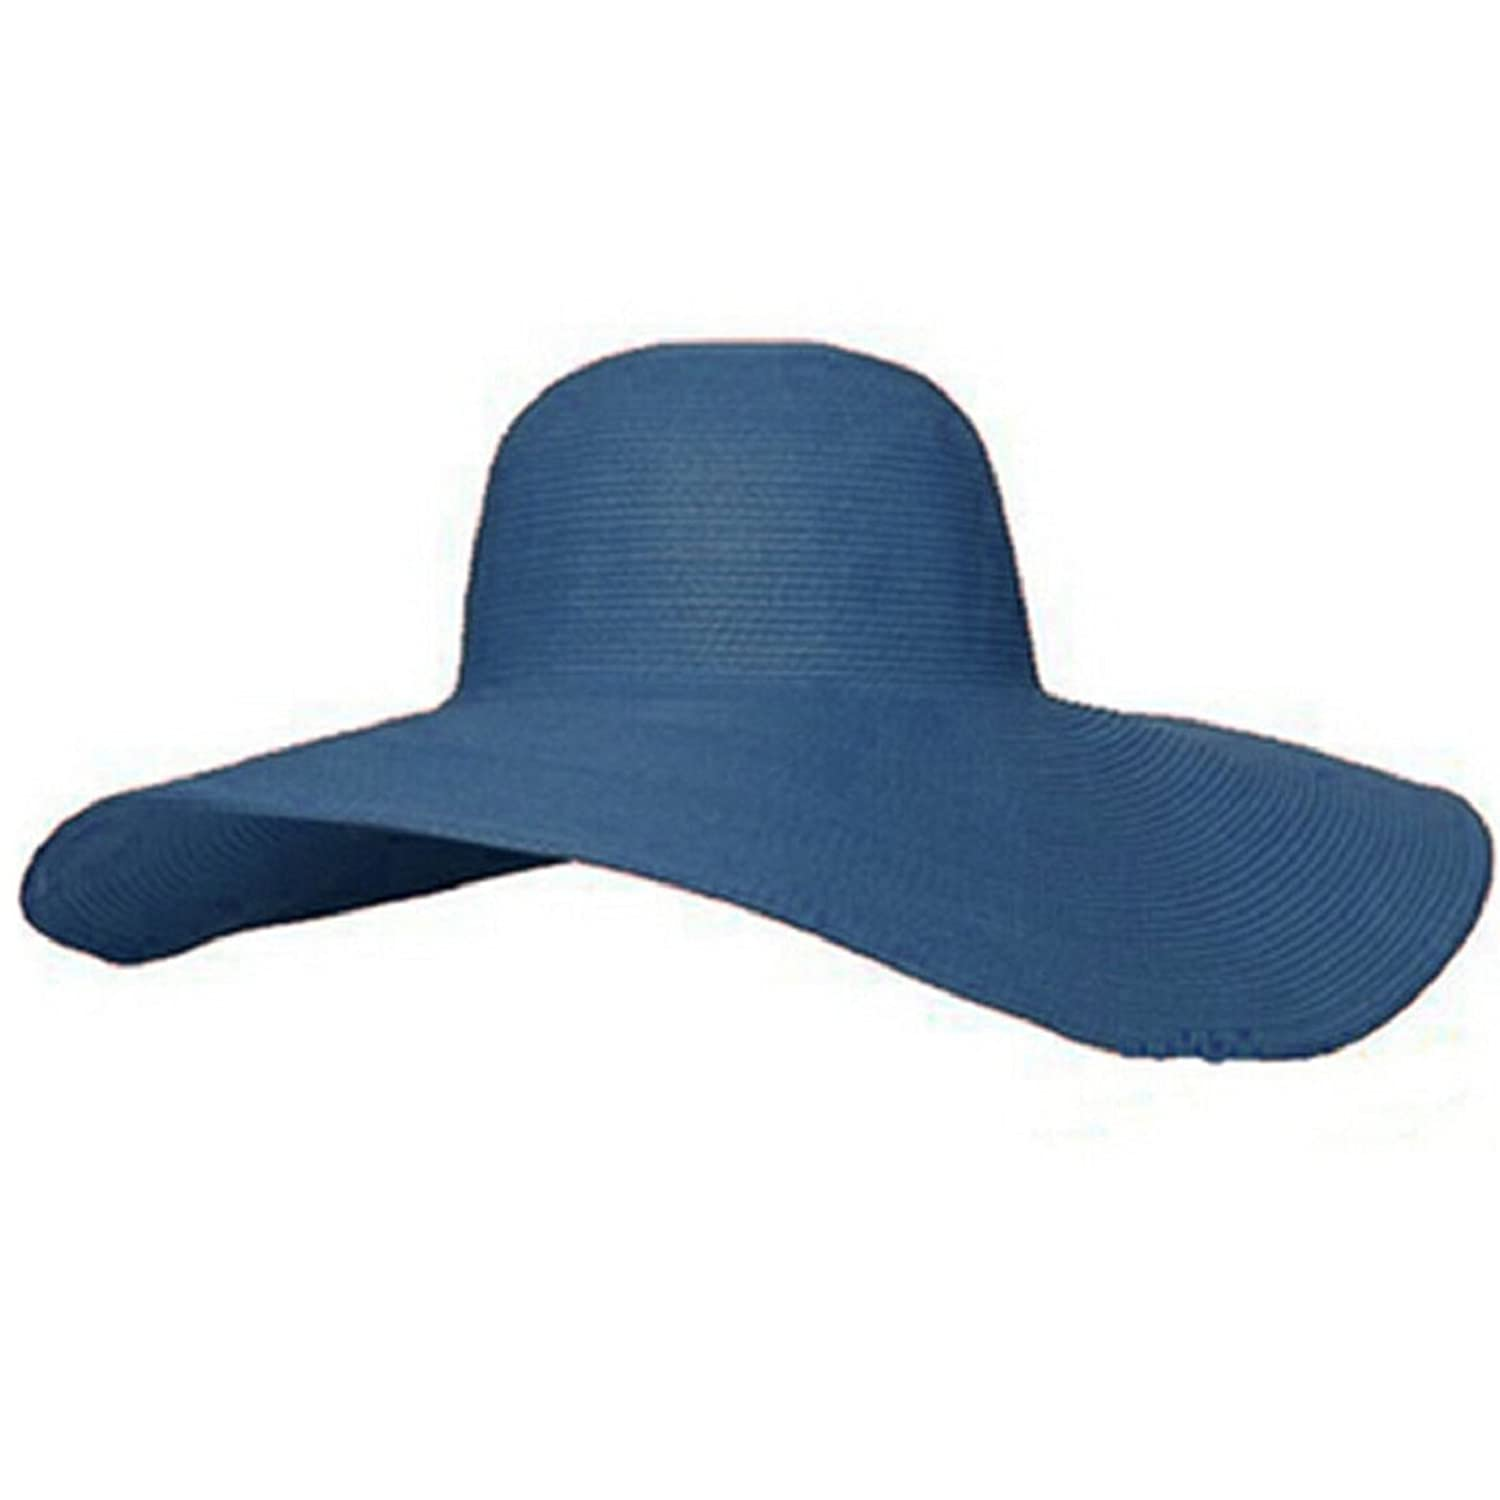 Beach Hats For Women Floppy Brim Floppy Beach Hat Sun